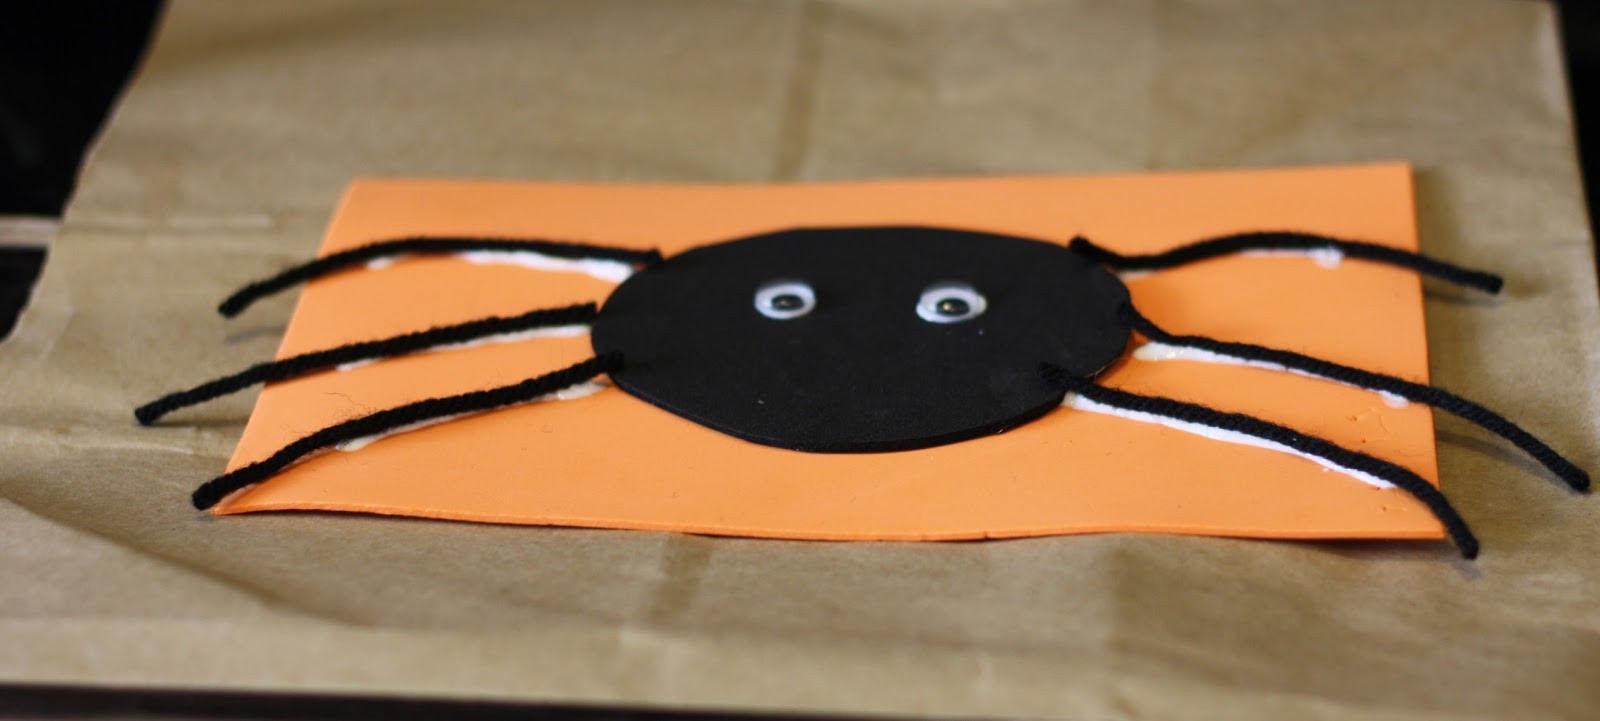 Best ideas about Easy Crafts For Preschoolers . Save or Pin 31 Easy Halloween Crafts for Preschoolers Now.